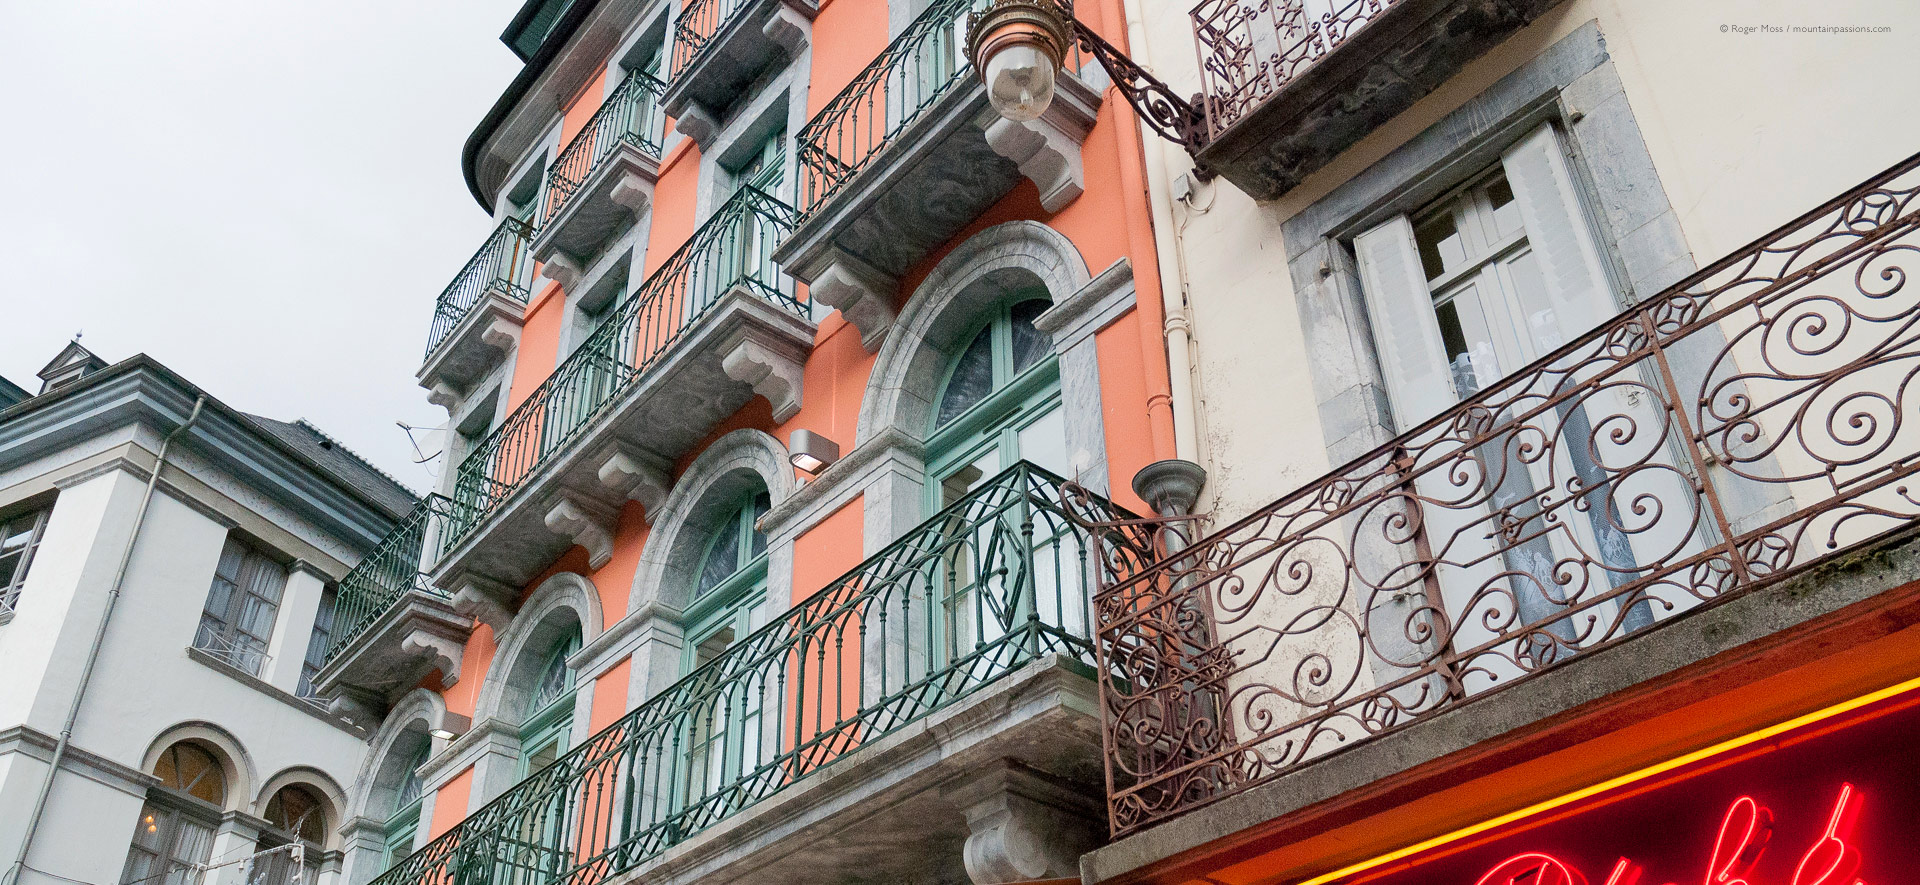 Low view of ornate facades with wrought iron balconies at Cauterets.